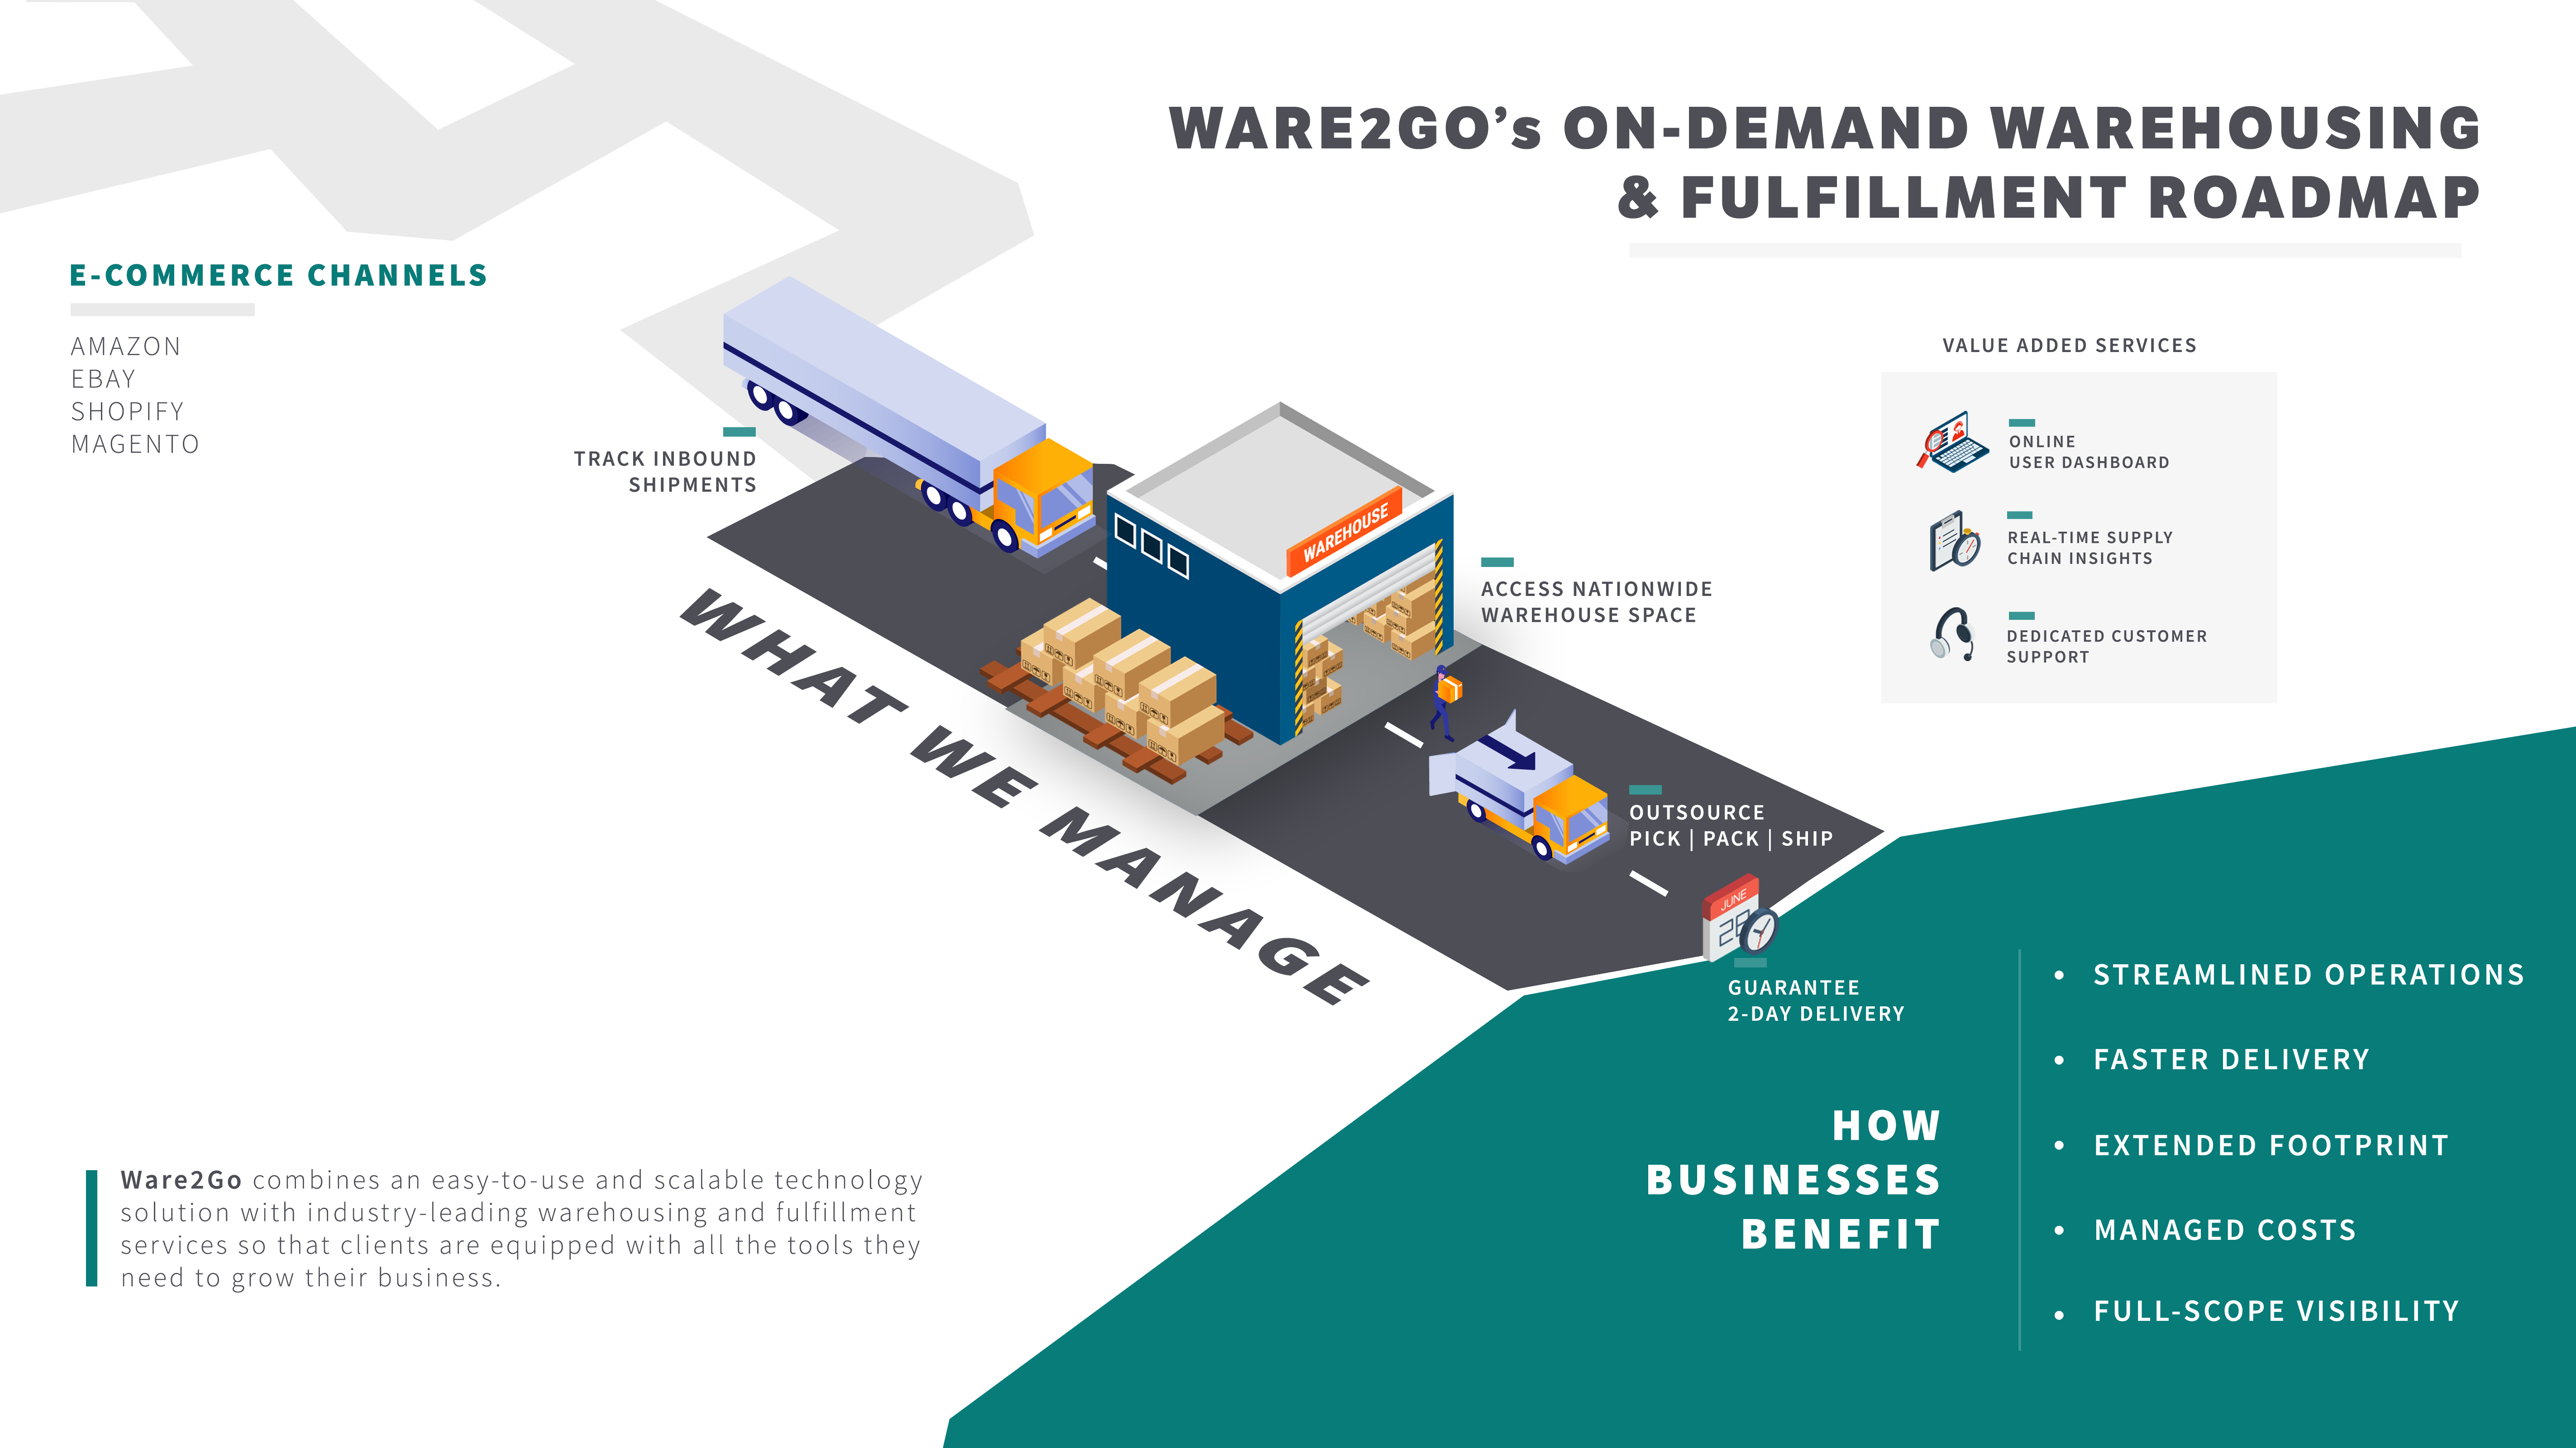 Ware2Go's on-demand warehousing and fulfillment solution